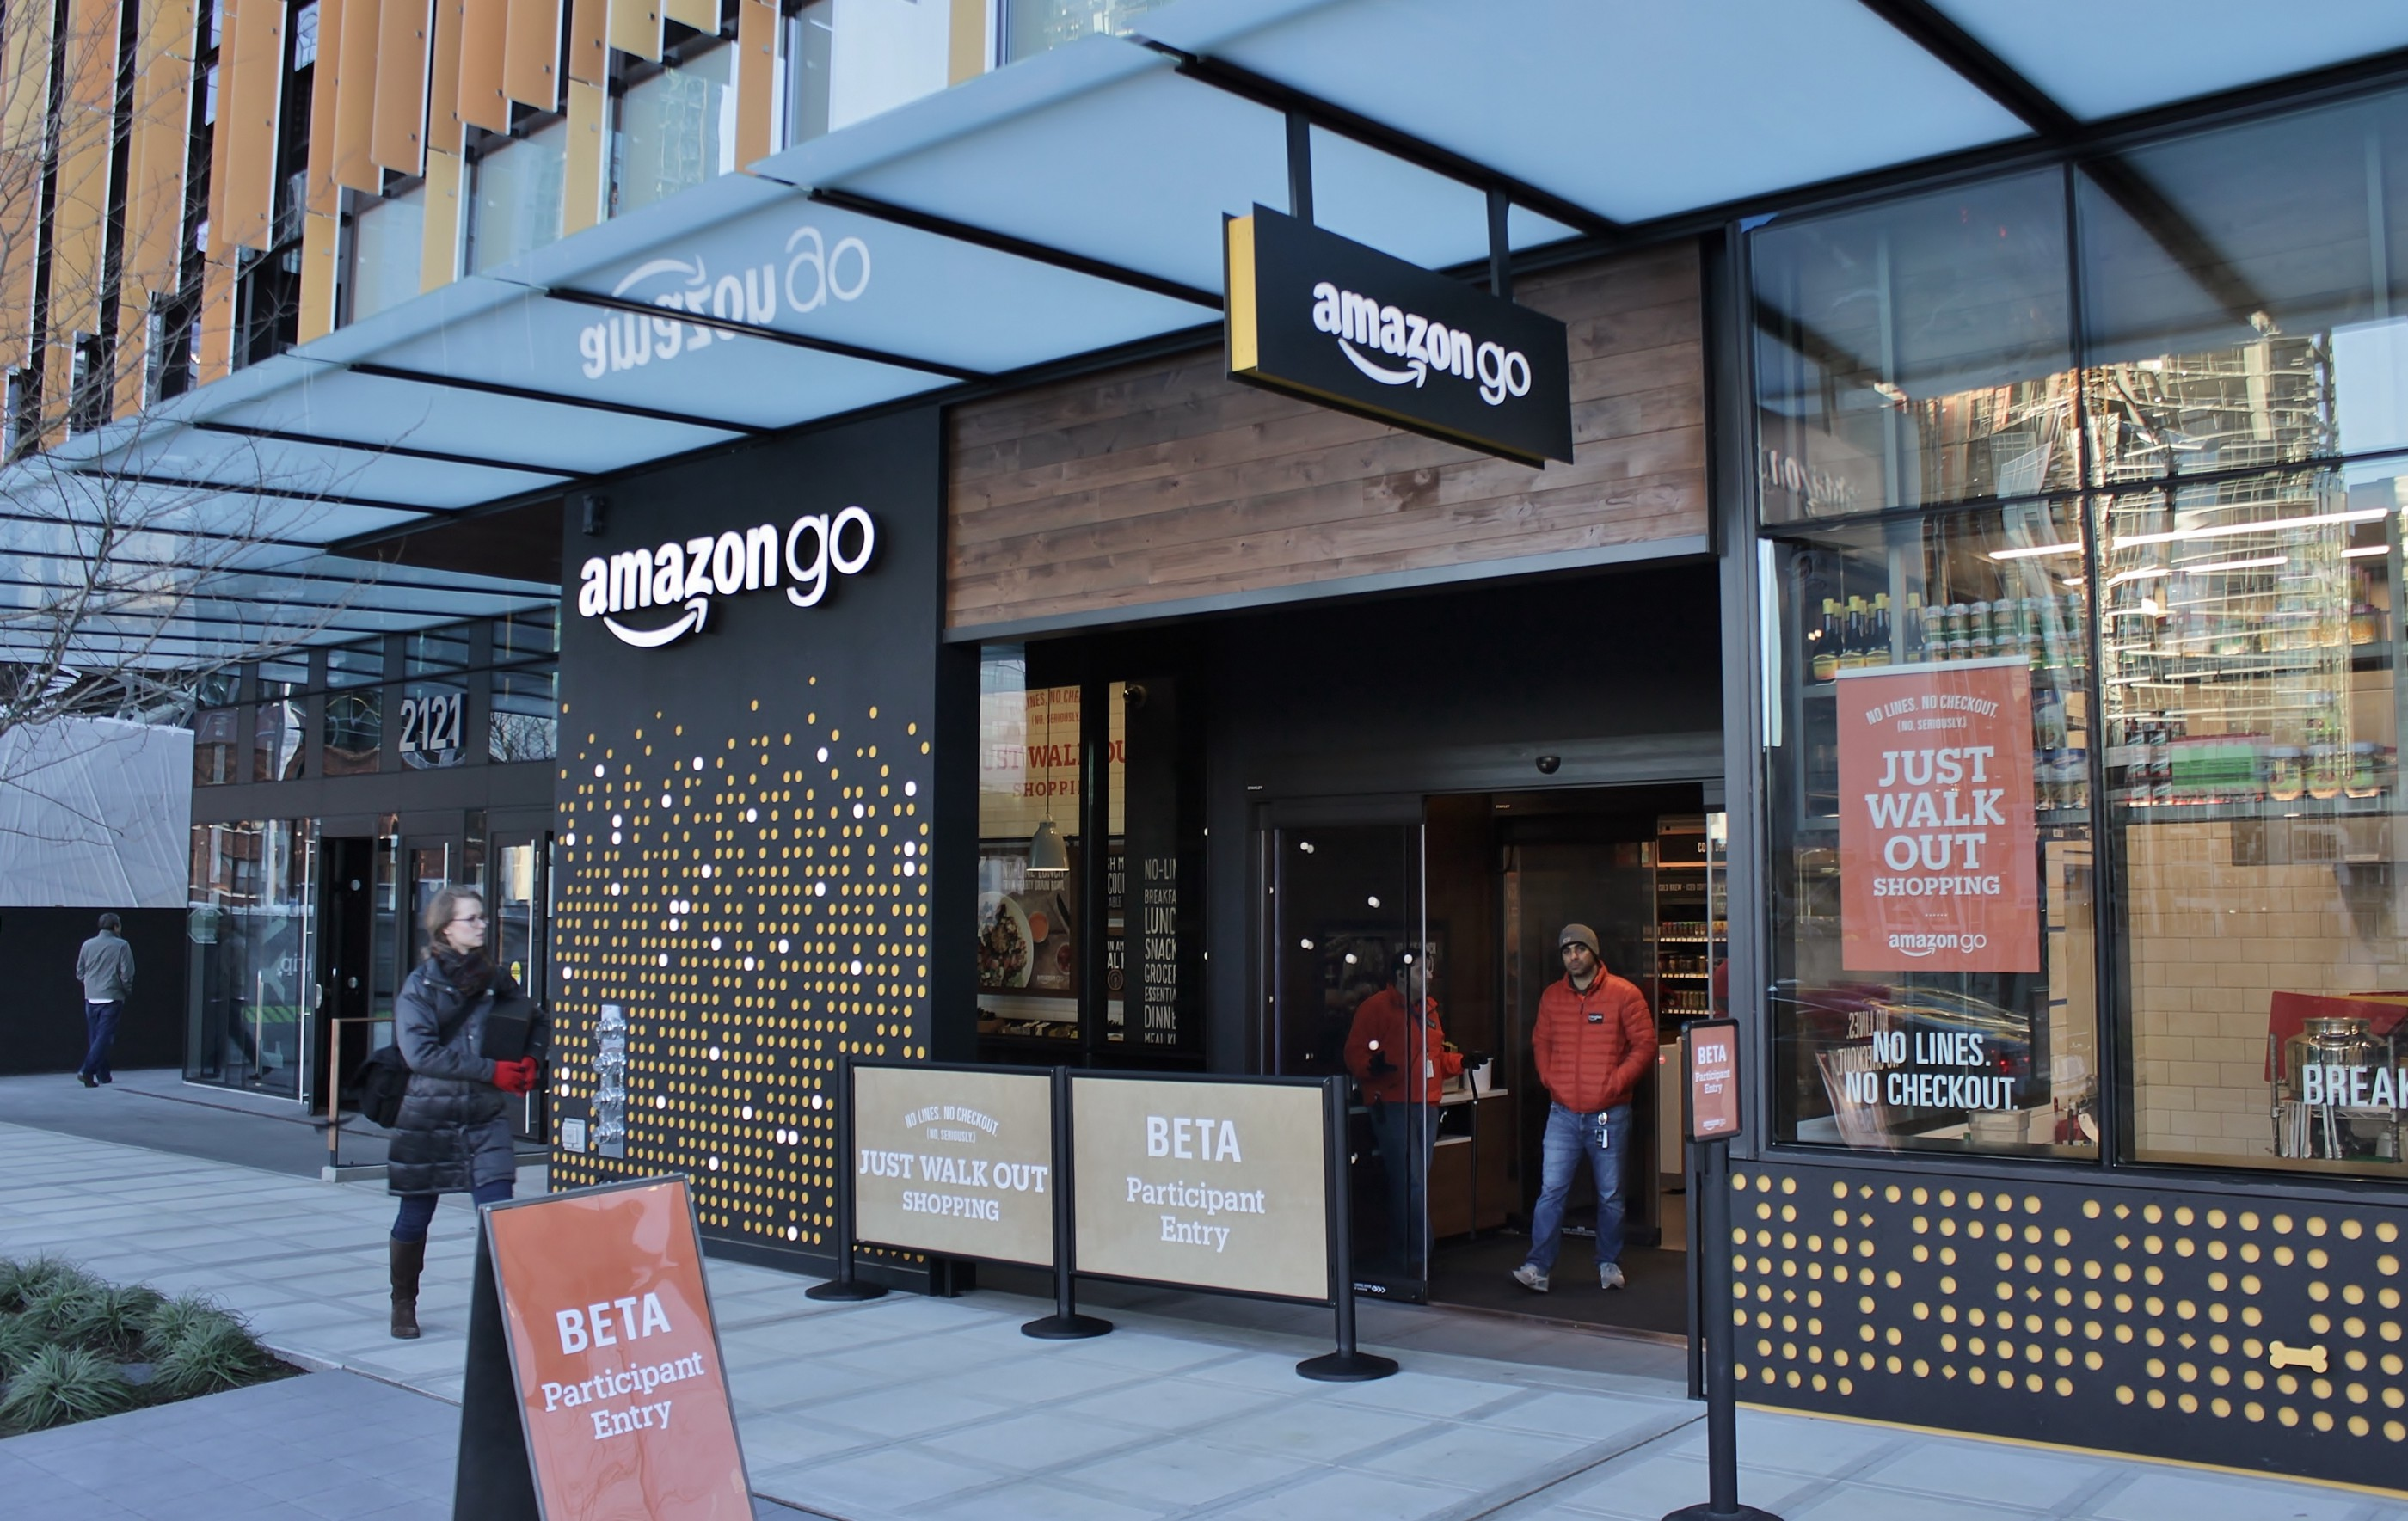 Amazon Go store, which has no cashiers or payment points